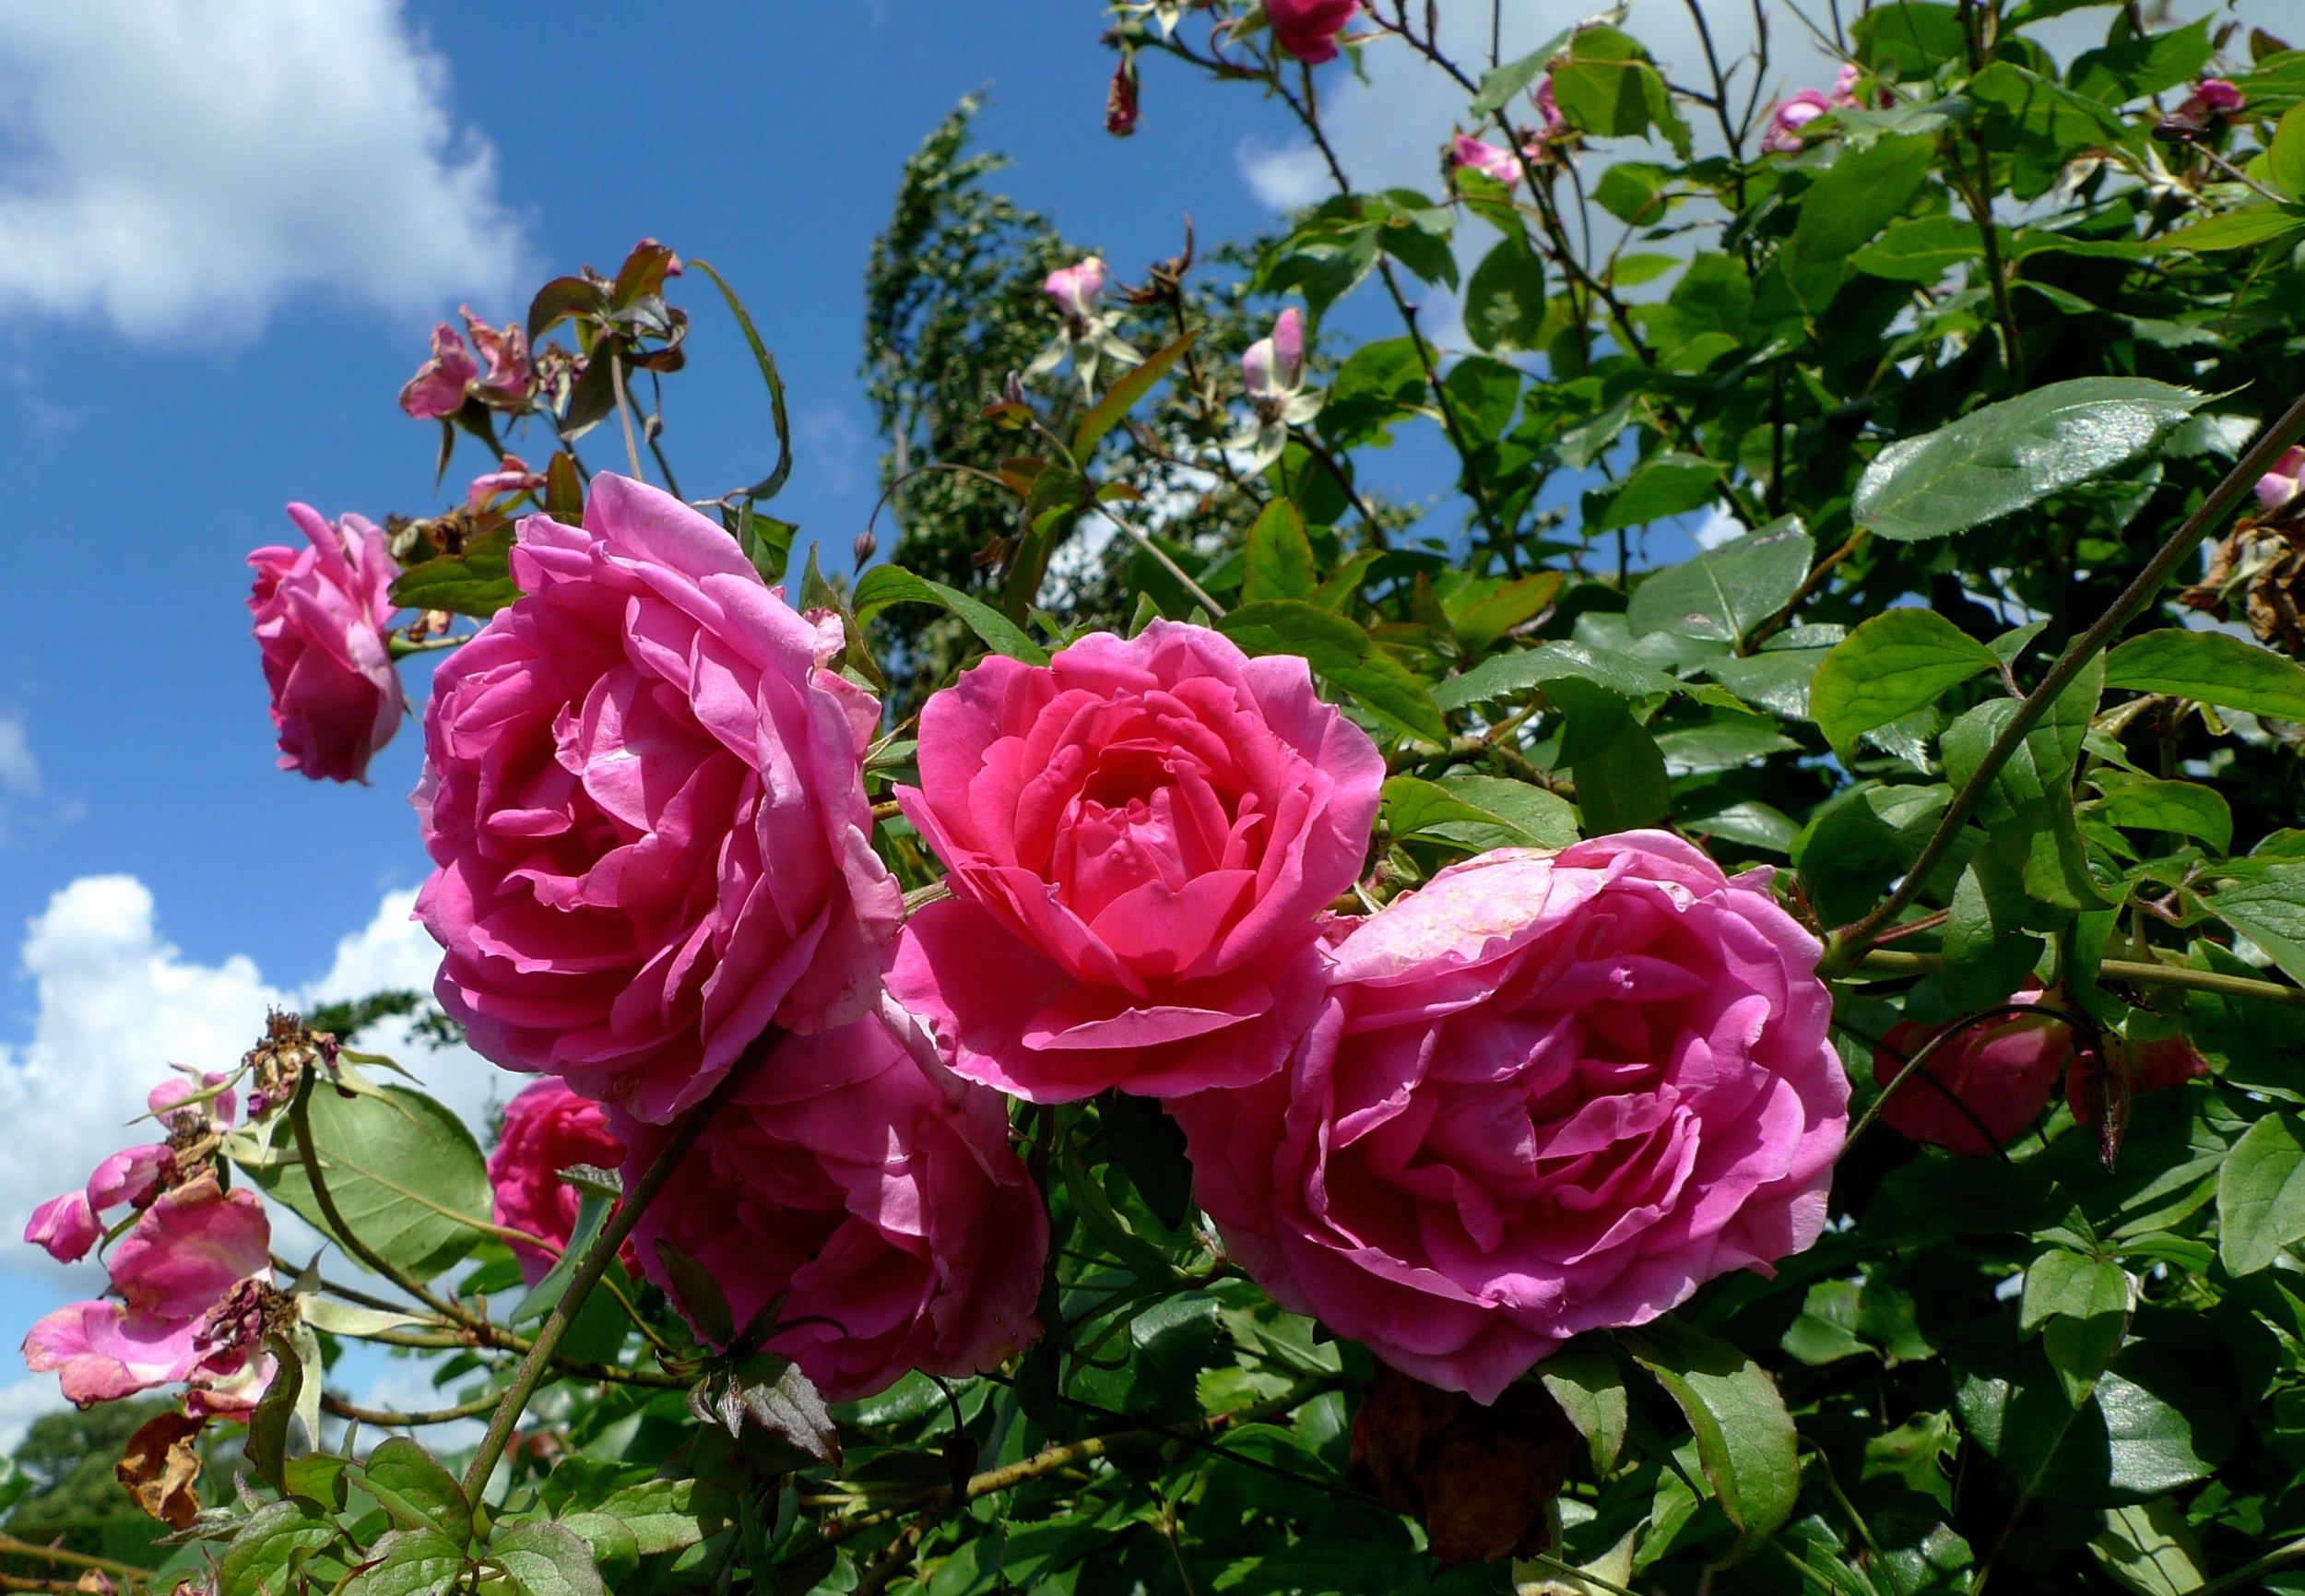 pink roses, blue sky and breathe